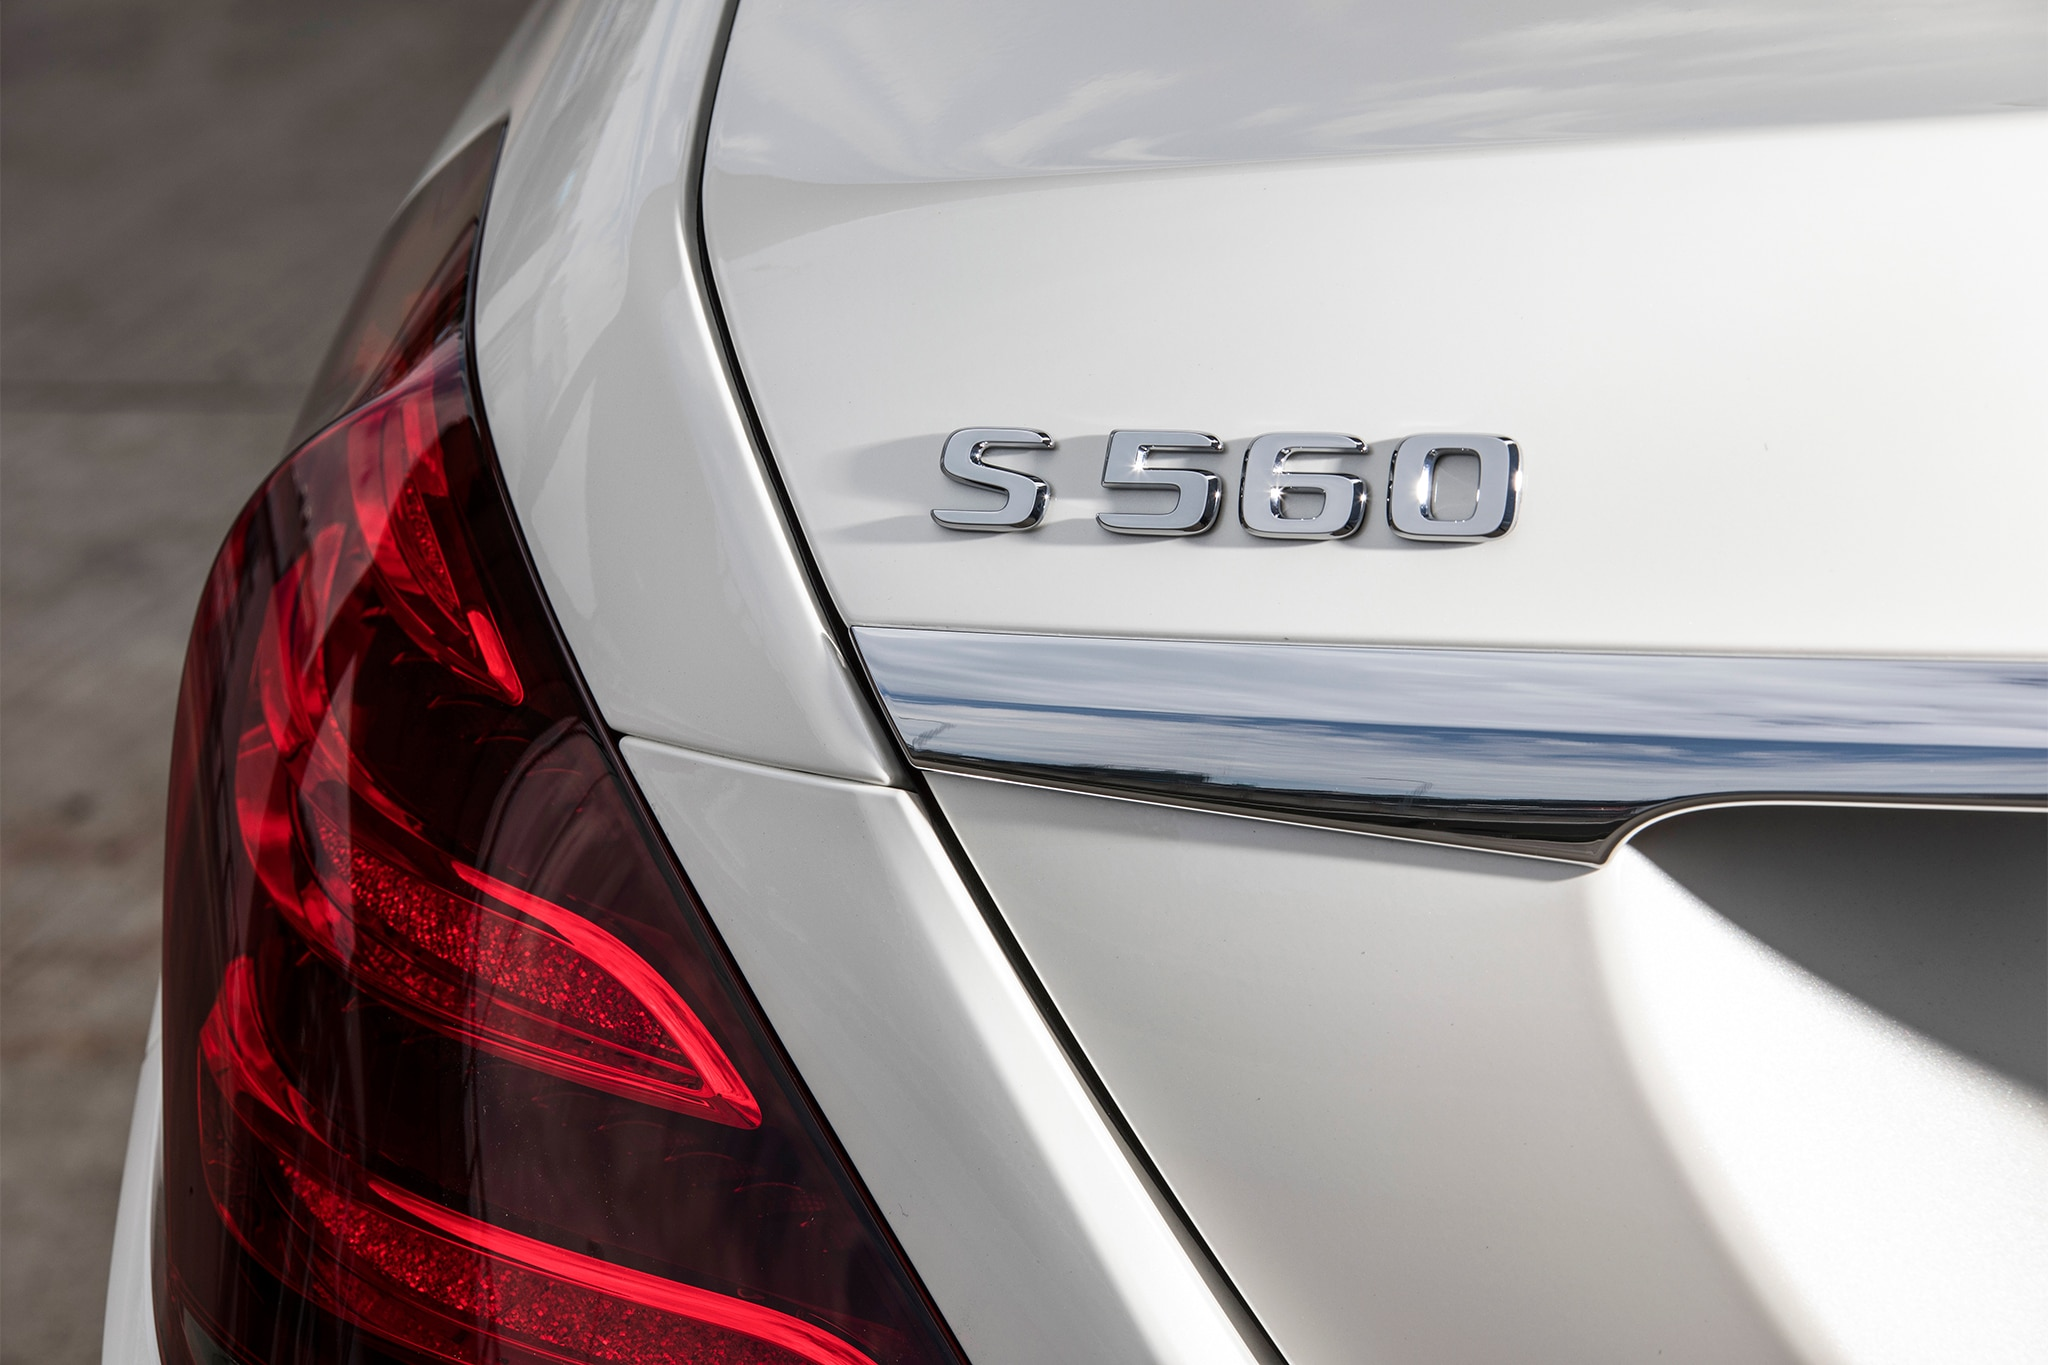 2018 mercedes benz s560. simple 2018 show more on 2018 mercedes benz s560 r